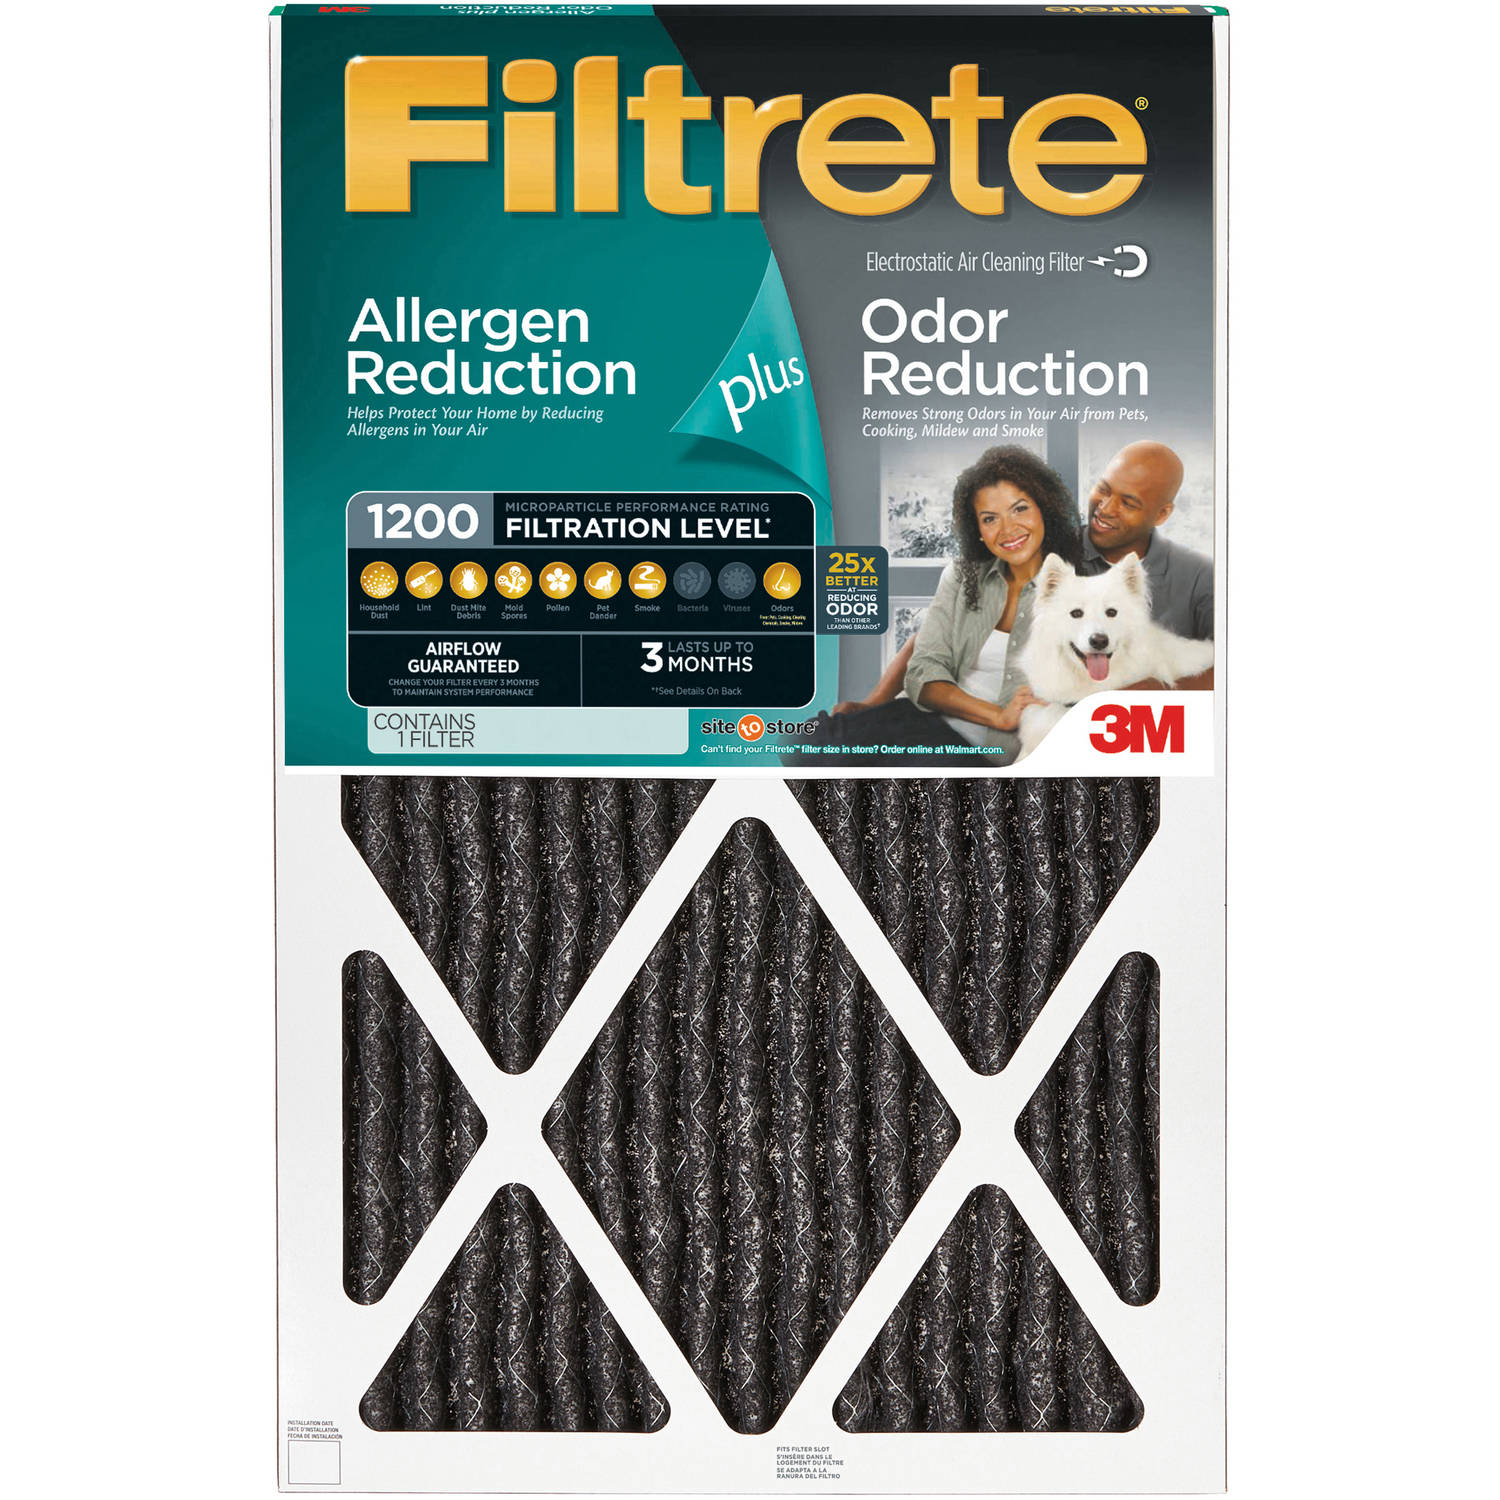 Filtrete Allergen Plus Odor Reduction Air and Furnace Filter, Available in Multiple Sizes